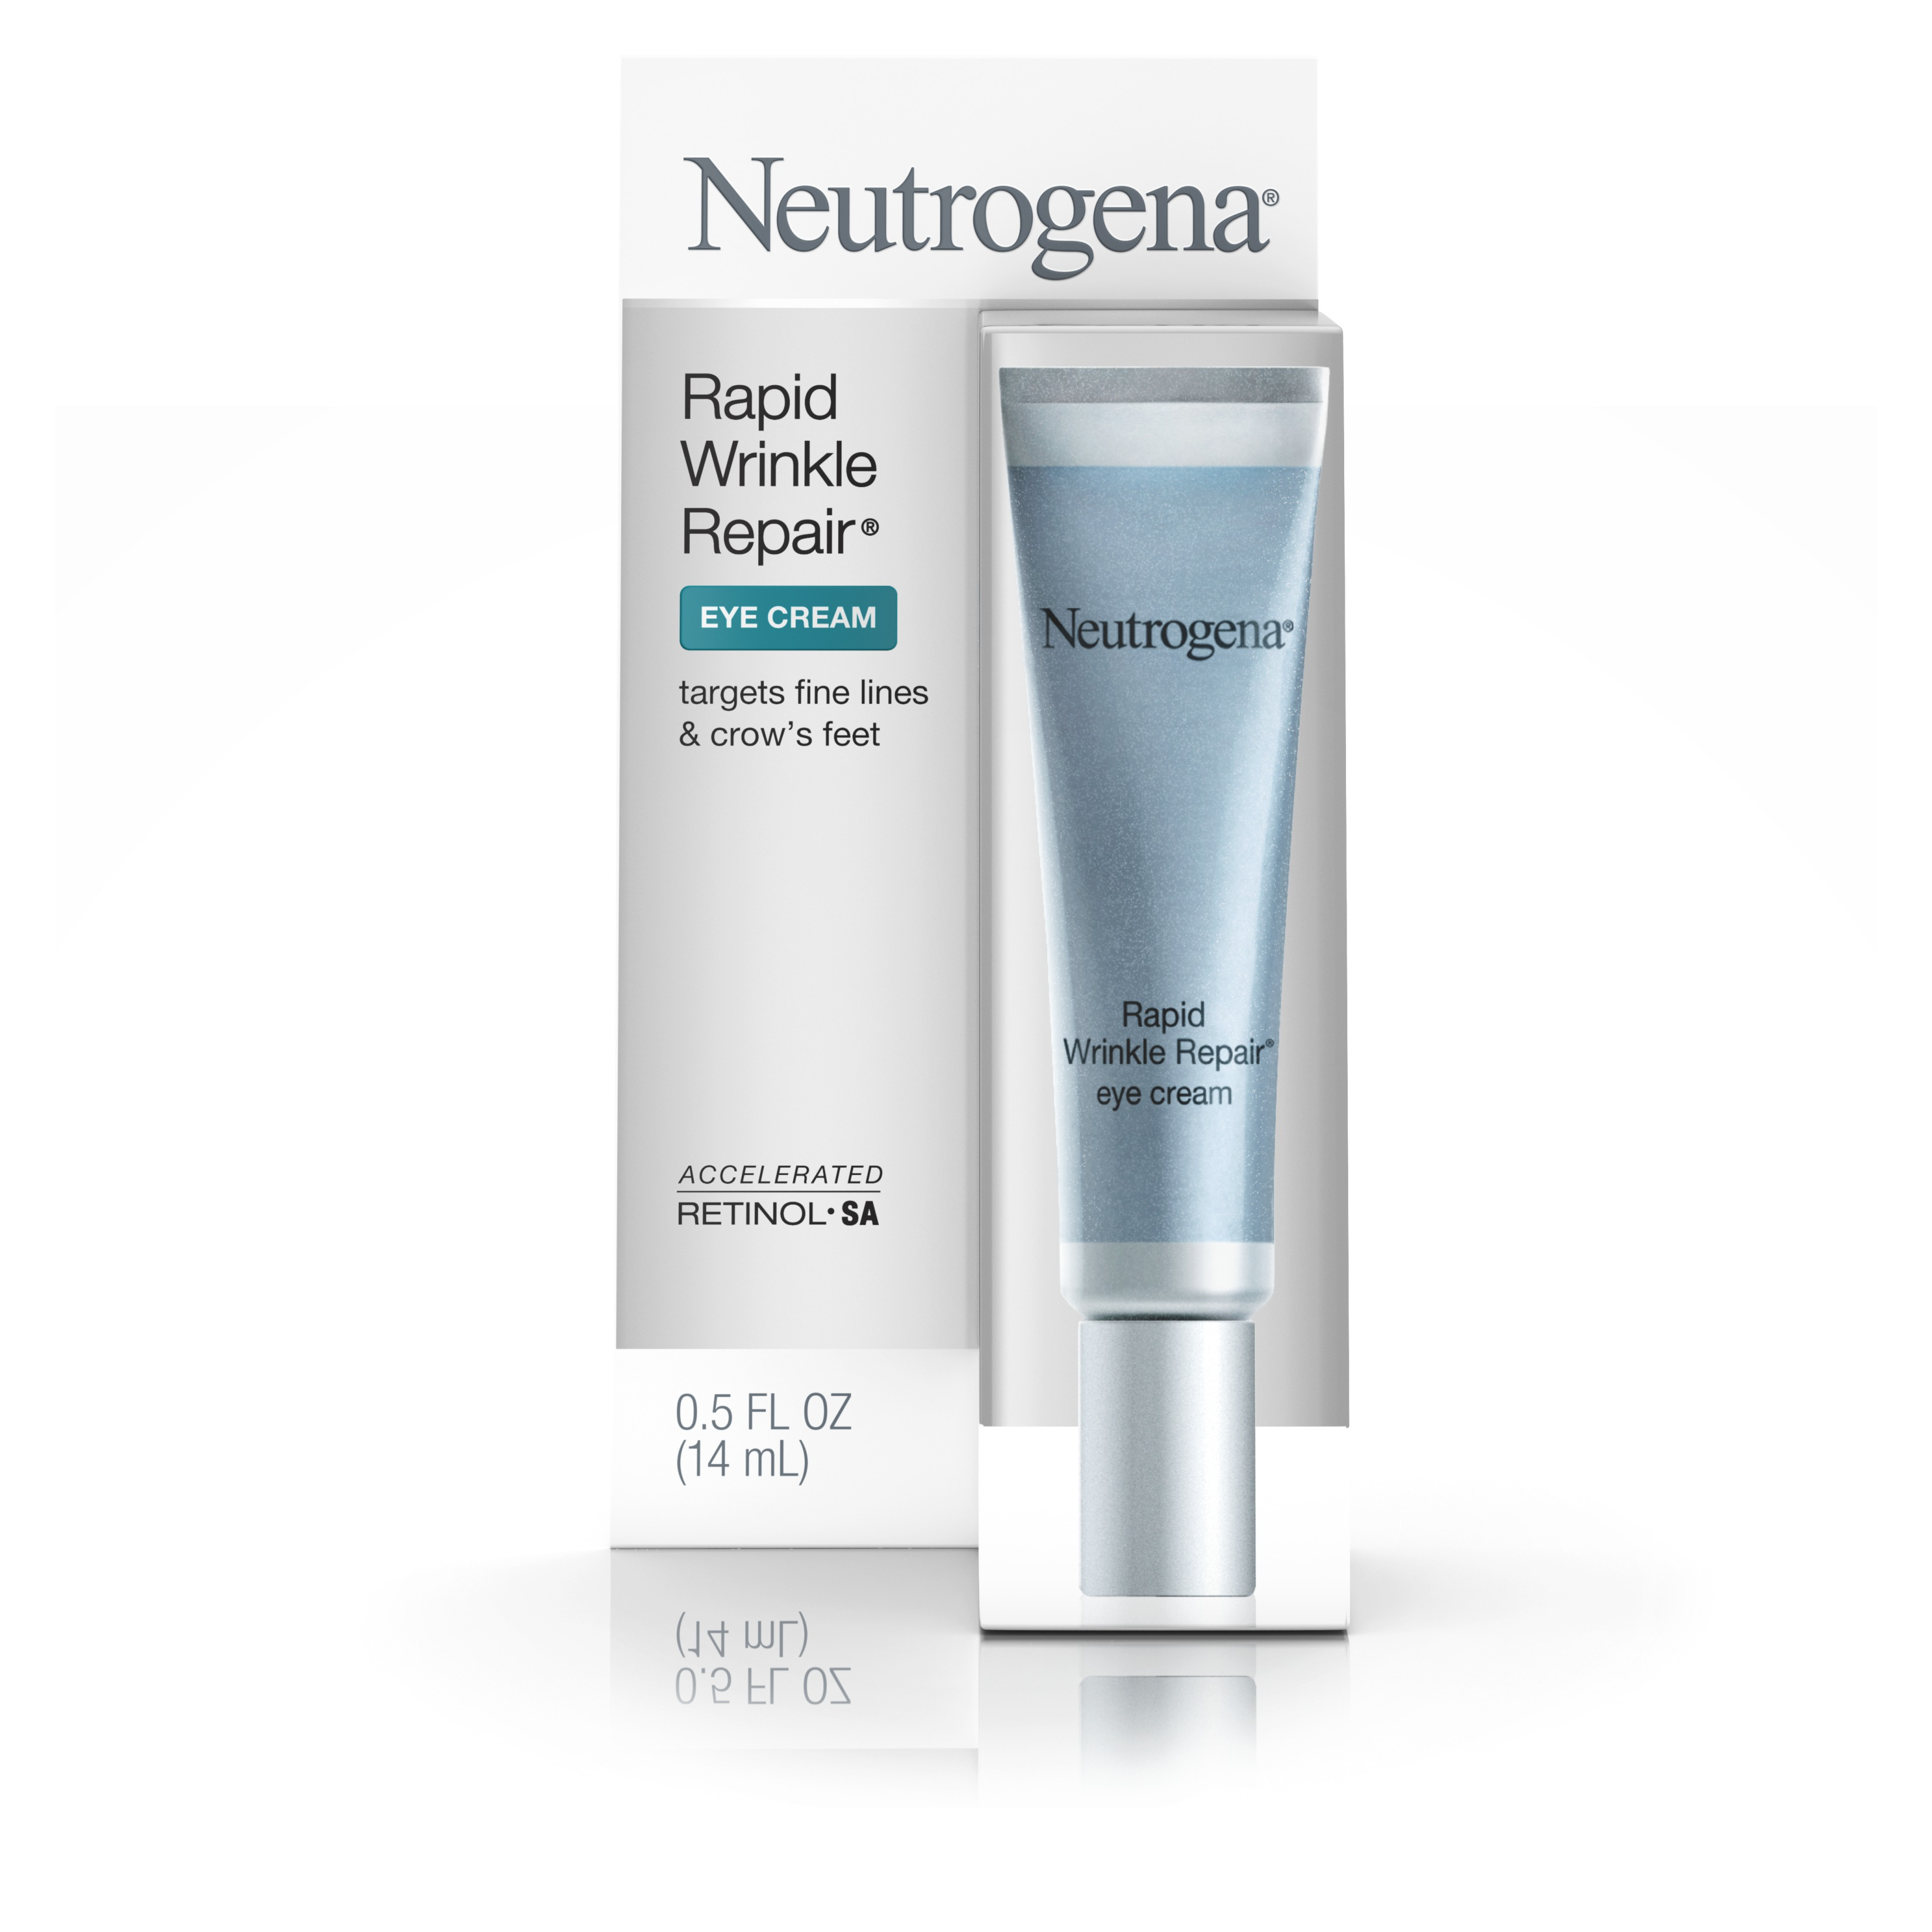 Neutrogena Rapid Wrinkle Repair Eye Cream With Retinol, 0 .5 Fl. Oz. - Walmart.com